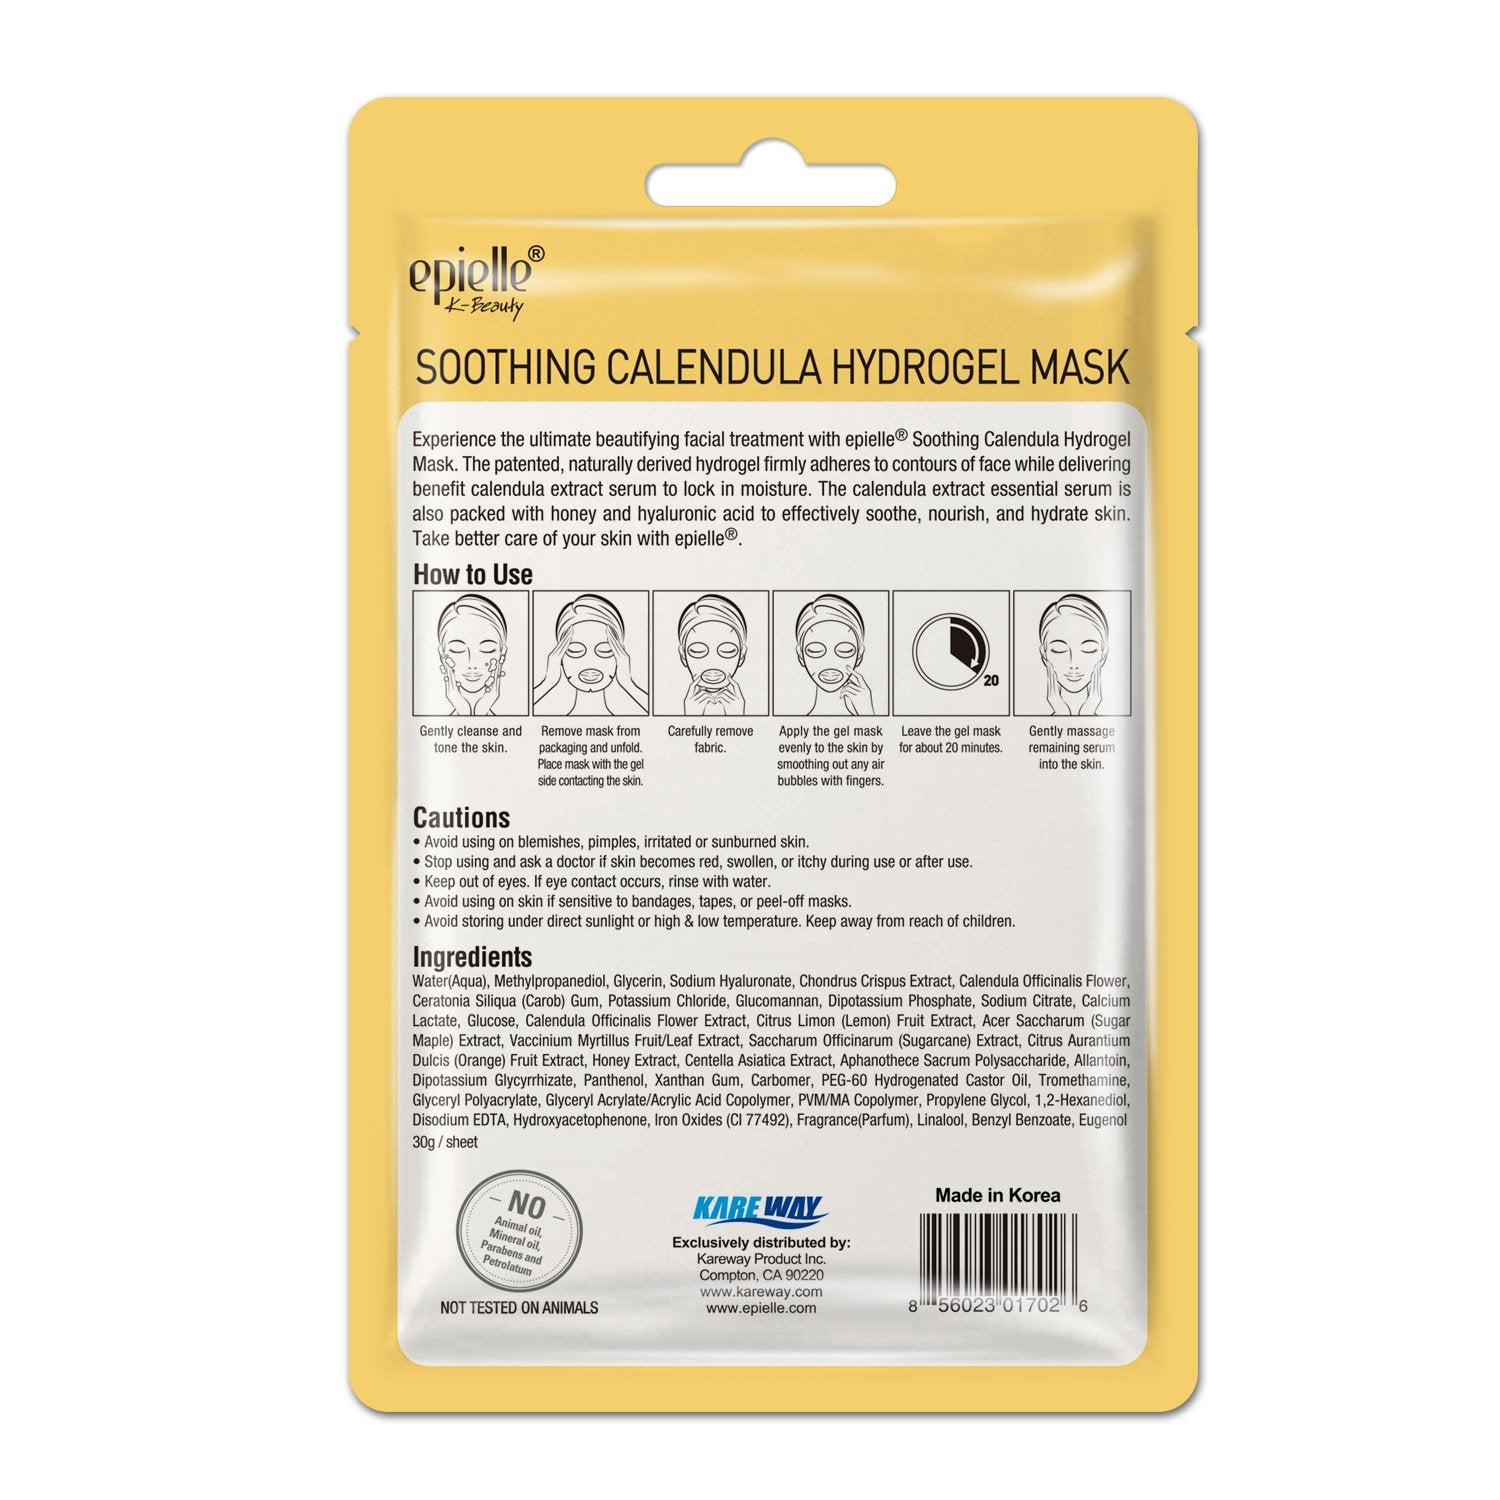 epielle  Soothing Calendula Hydrogel Mask, 1ct